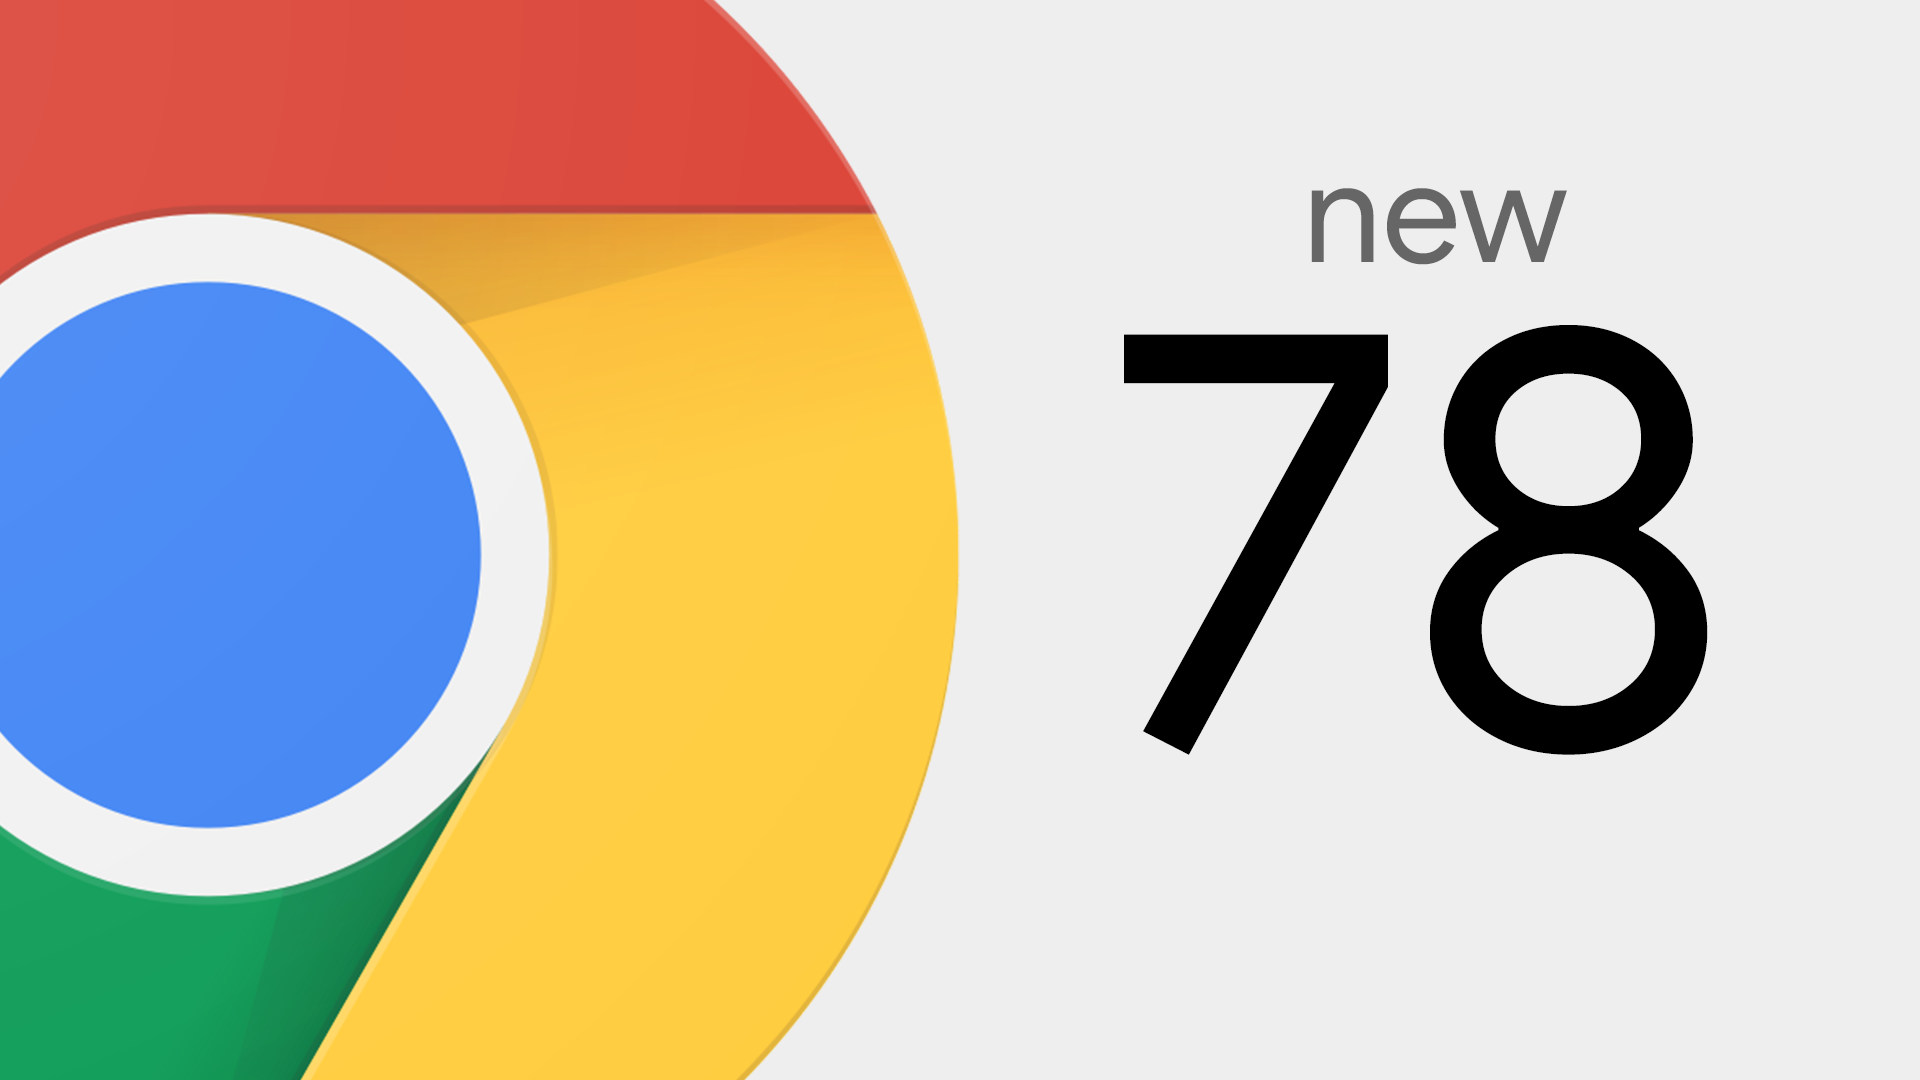 New in Chrome 78